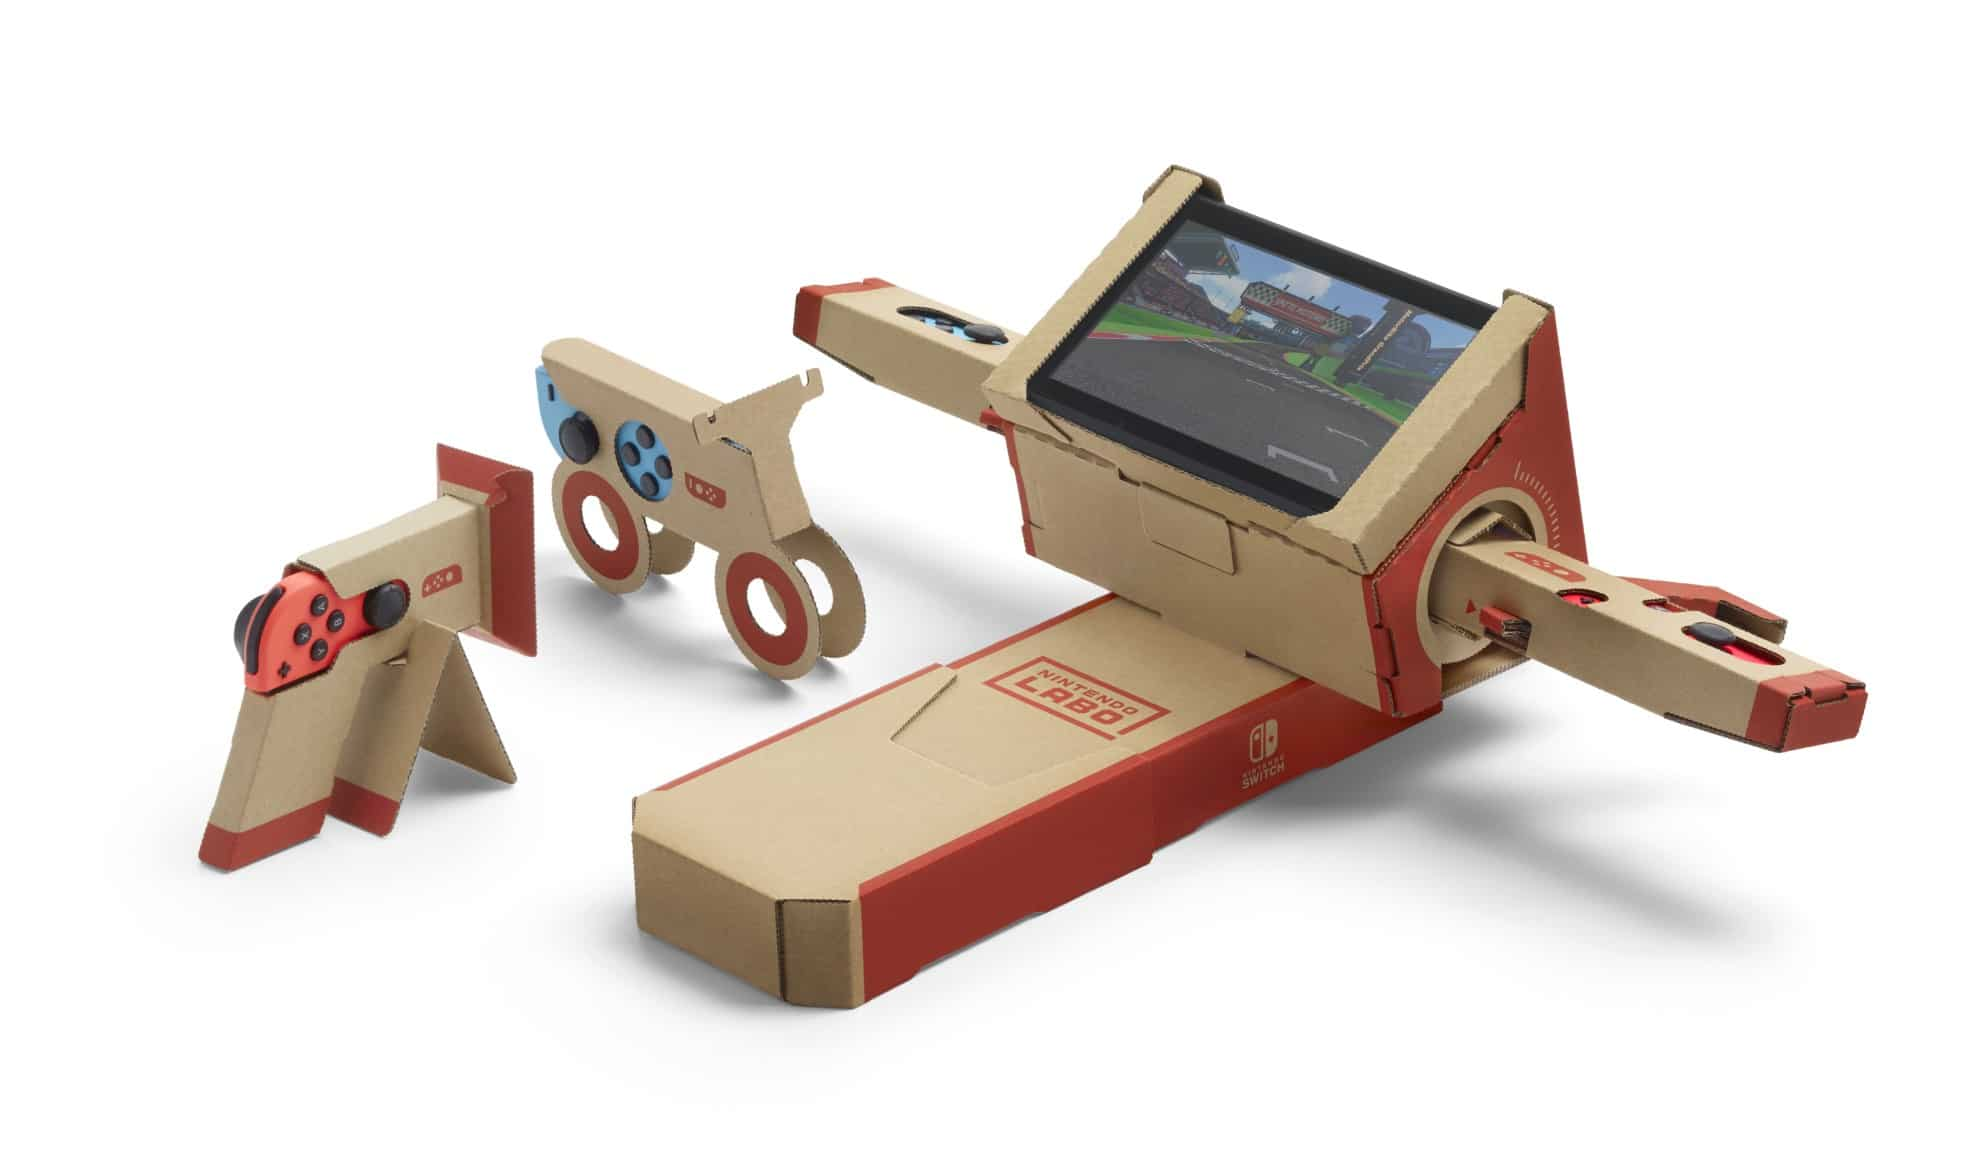 nintendo labo baut roboter und spielzeug aus pappe. Black Bedroom Furniture Sets. Home Design Ideas